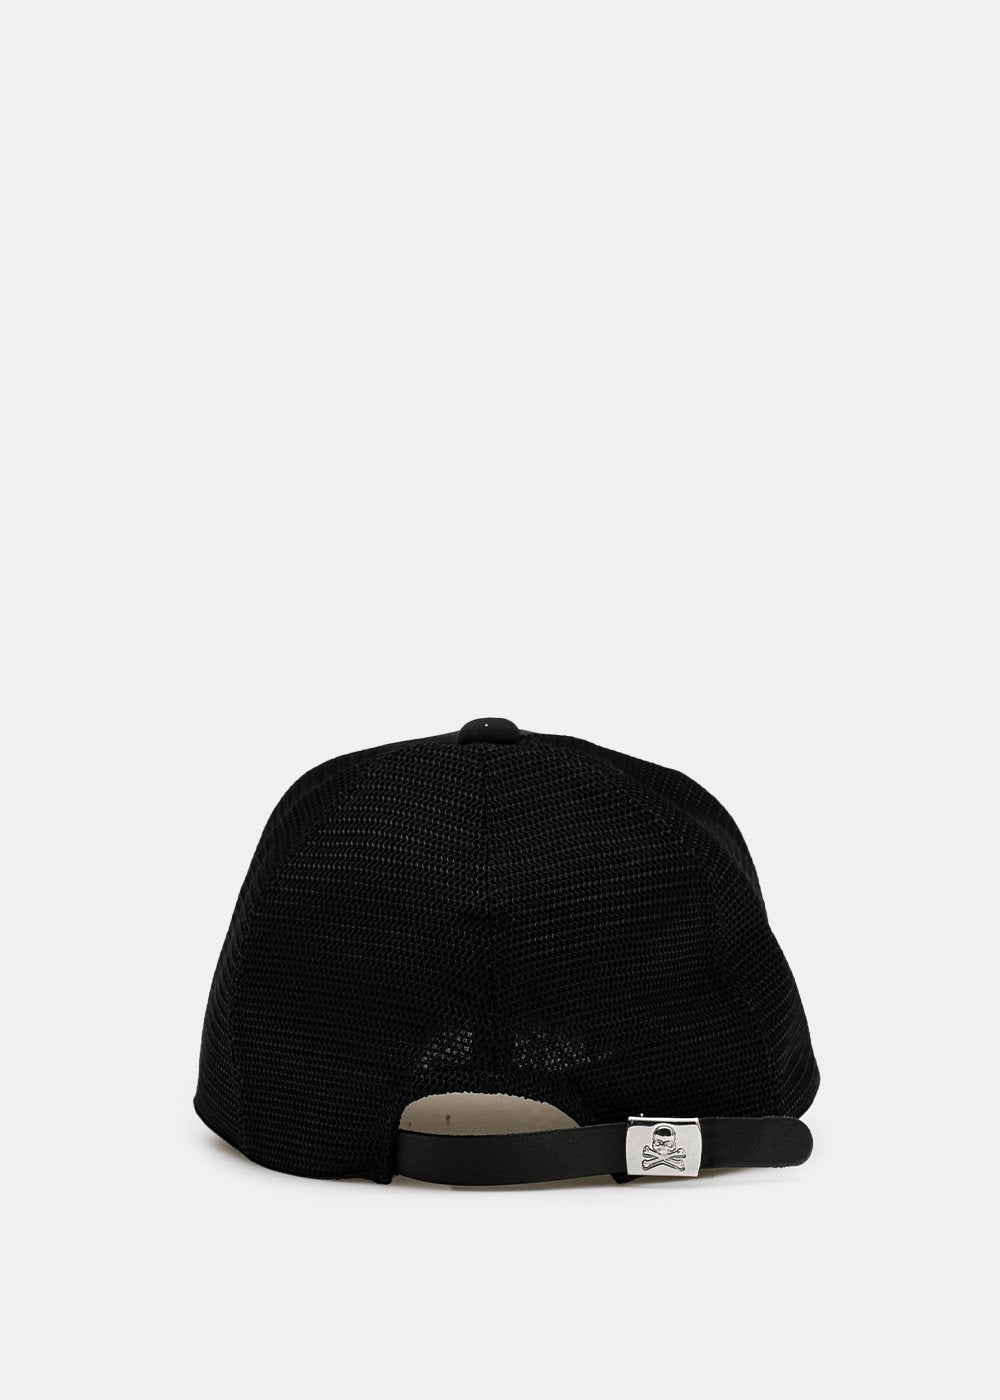 Black Embroidered Baseball Cap